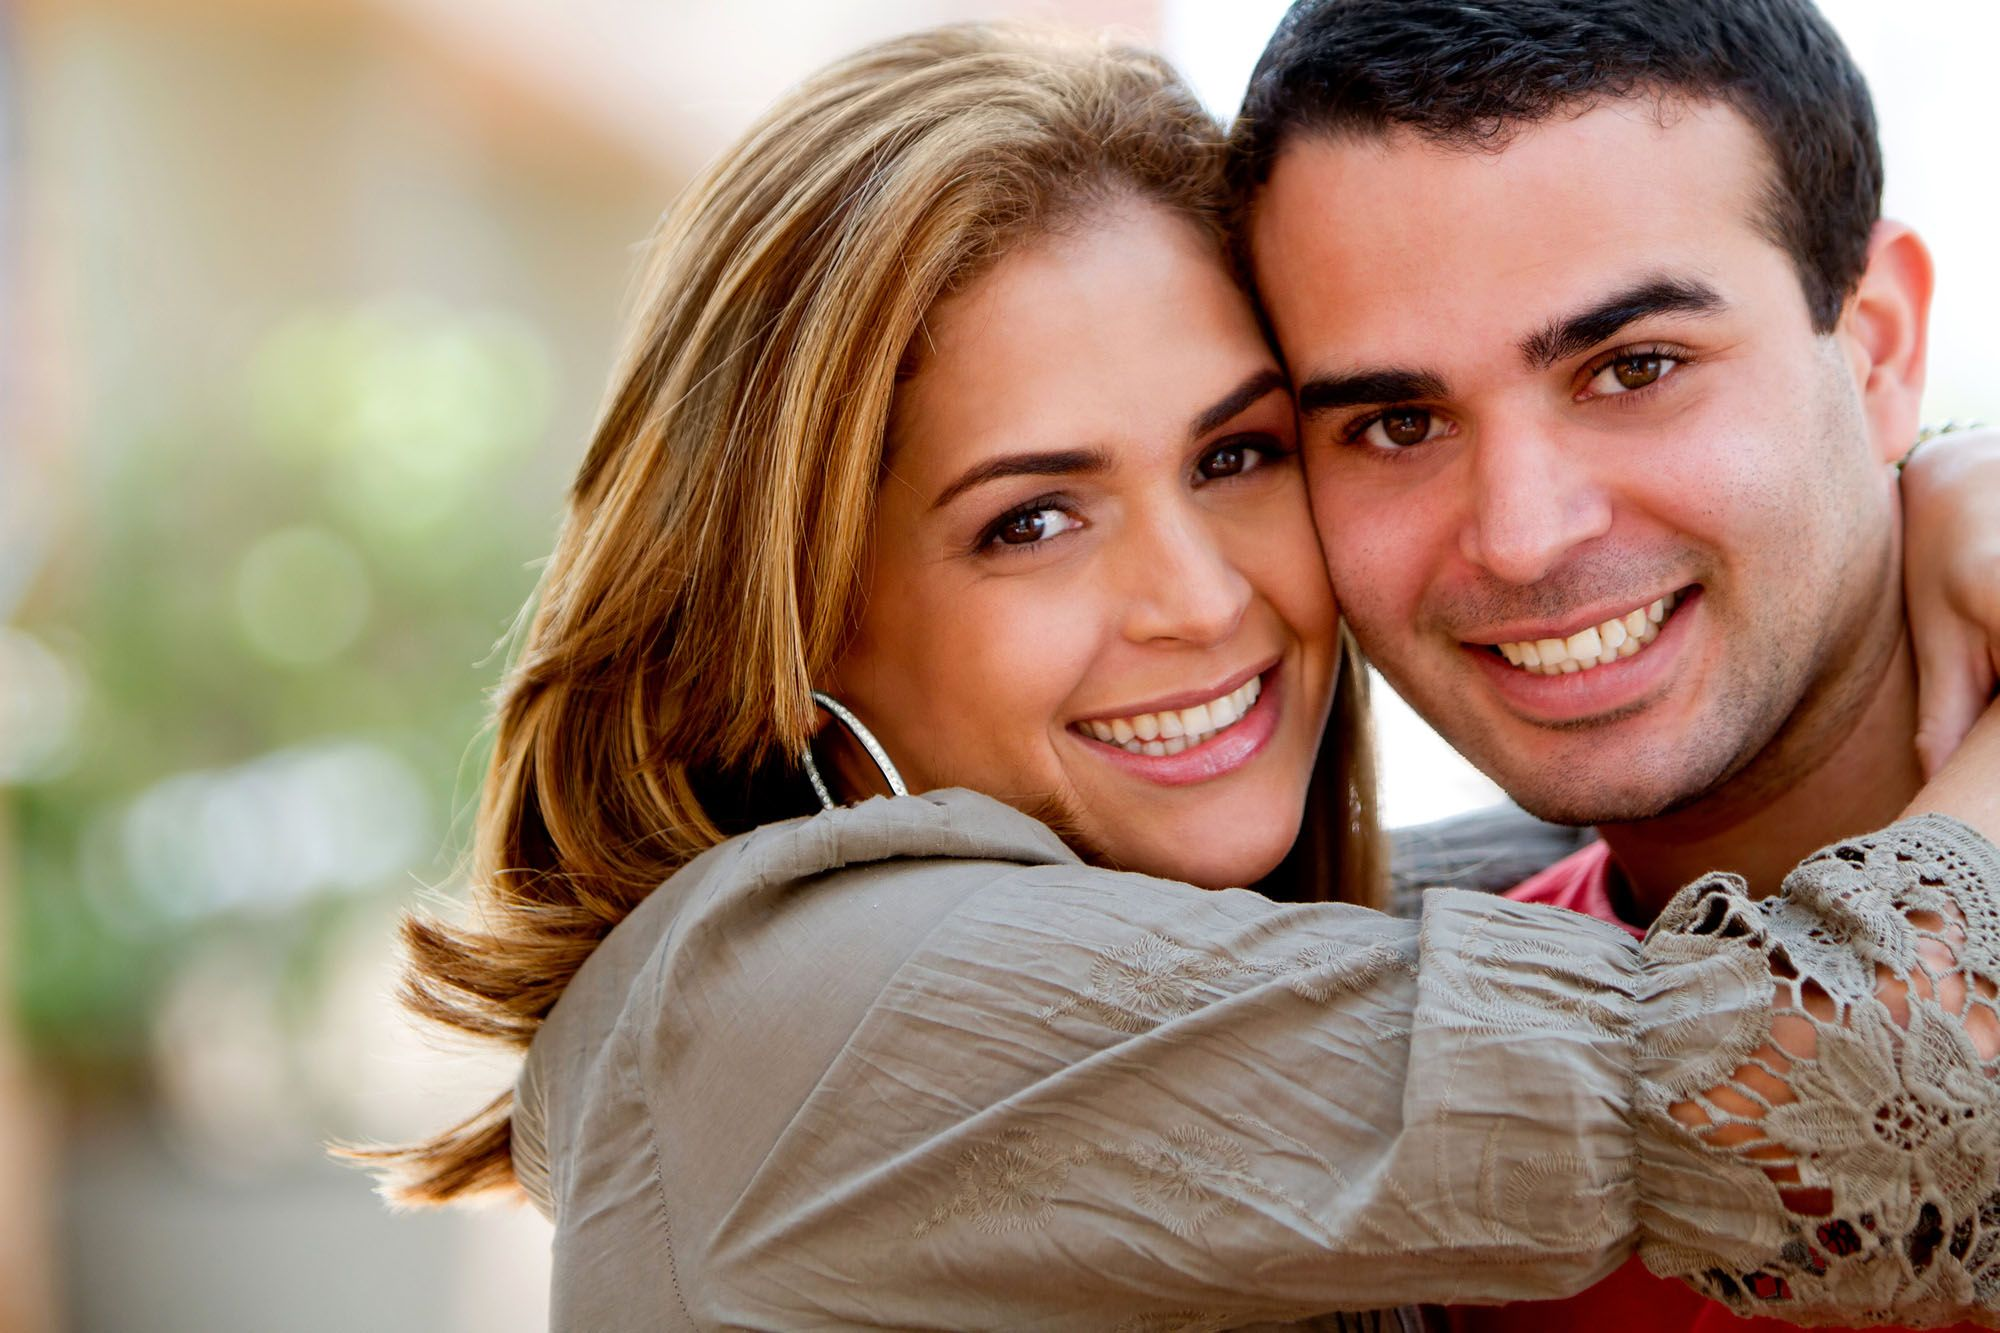 Contact Us - photo of smiling couple